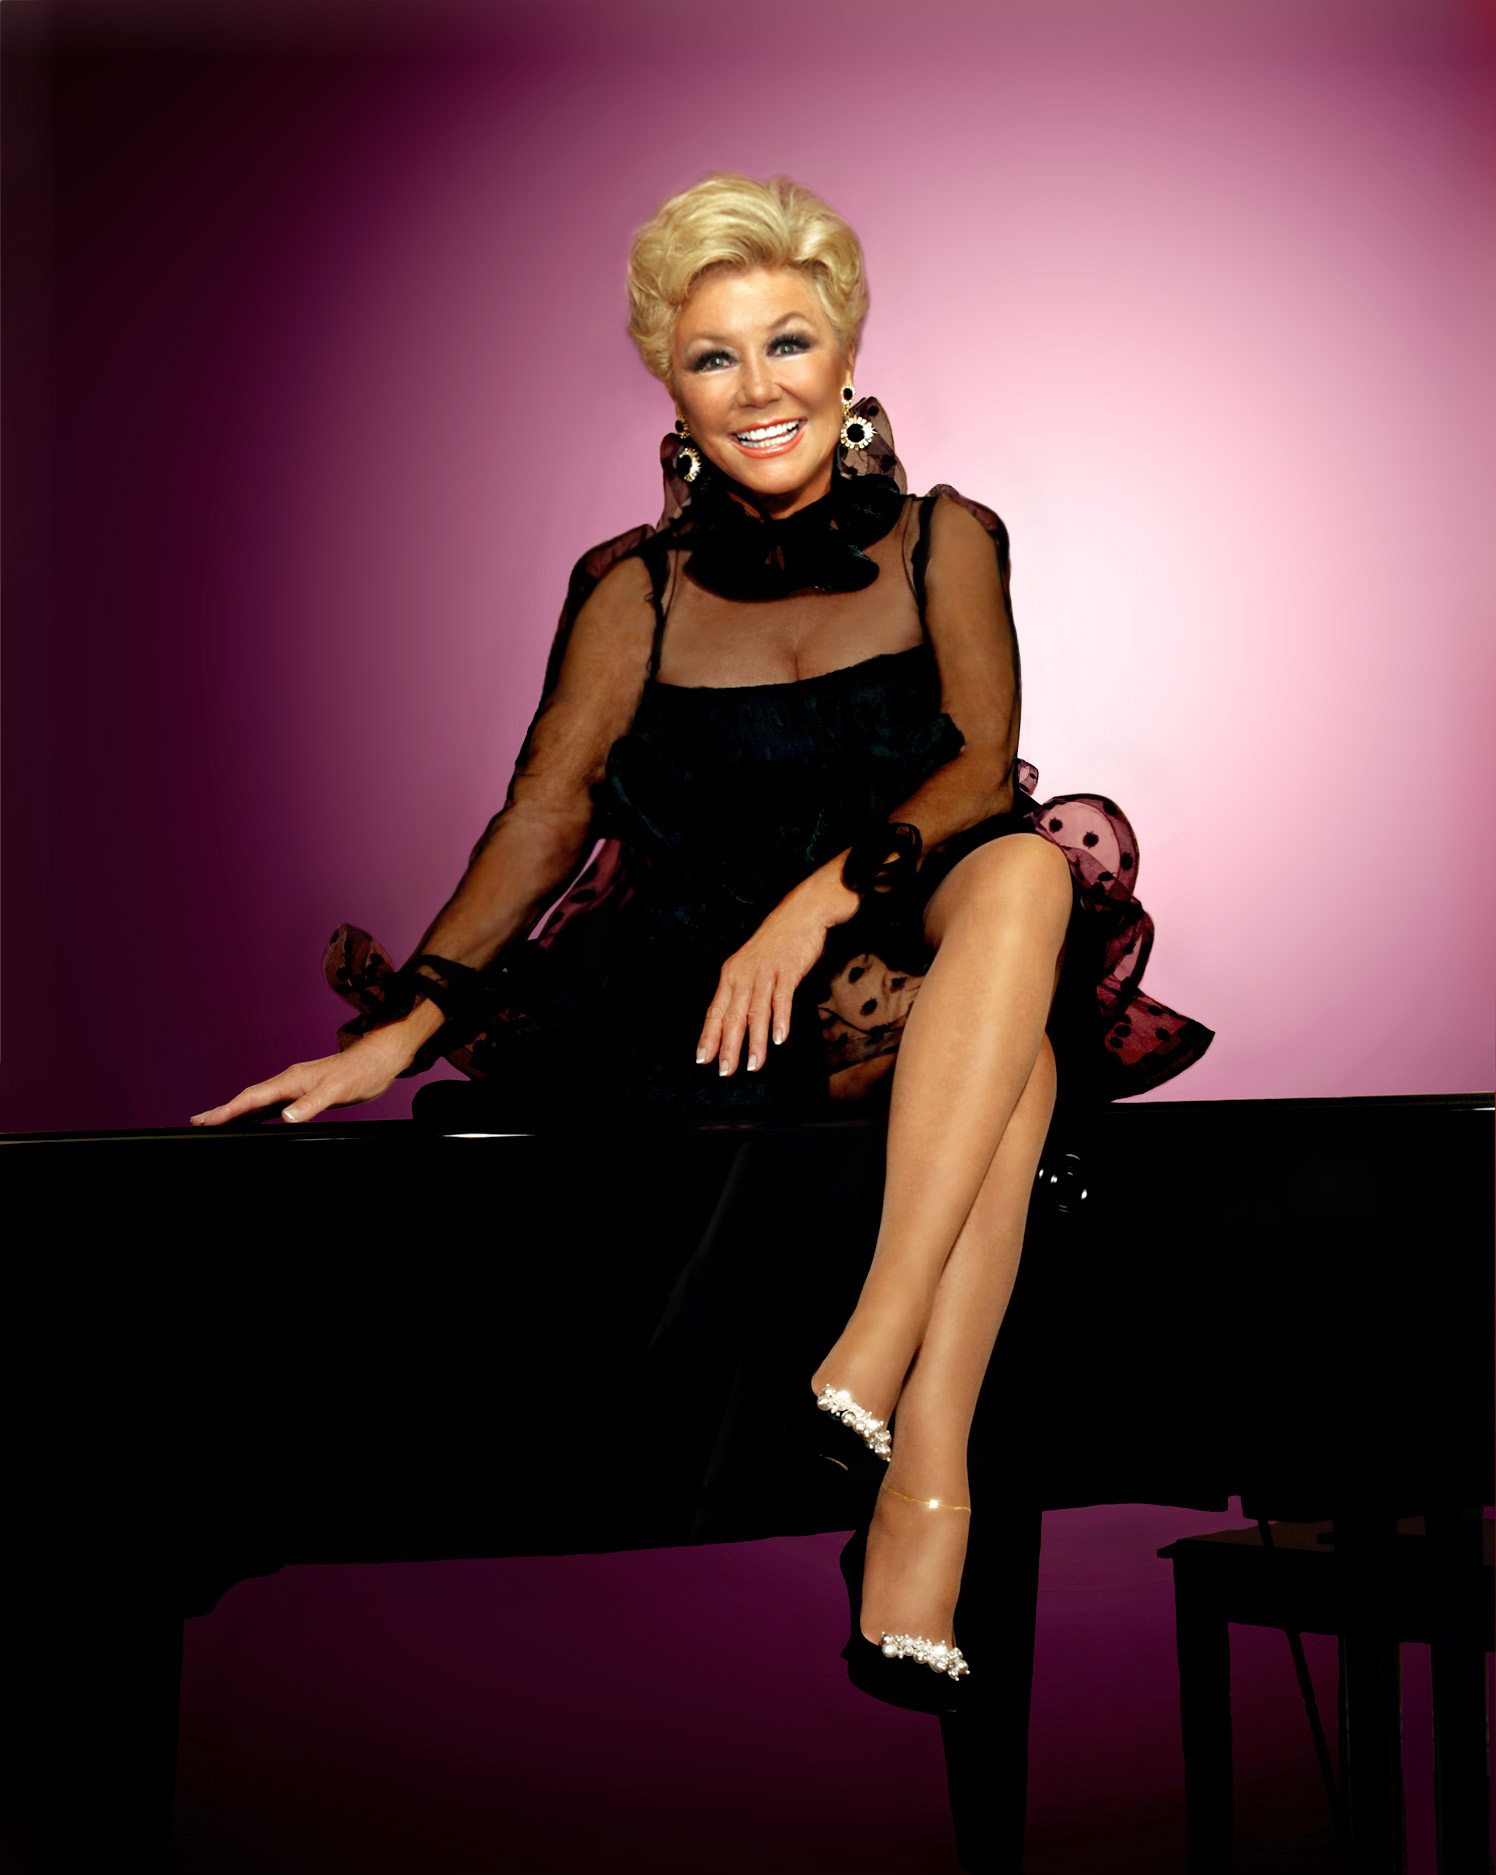 mitzi gaynor net worthmitzi gaynor photos, mitzi gaynor let go, mitzi gaynor songs, mitzi gaynor, mitzi gaynor i don't care girl, mitzi gaynor measurements, mitzi gaynor net worth, mitzi gaynor christmas, mitzi gaynor biography, mitzi gaynor south pacific, mitzi gaynor death, mitzi gaynor white christmas, mitzi gaynor youtube, mitzi gaynor georgy girl, mitzi gaynor imdb, mitzi gaynor height, mitzi gaynor legs